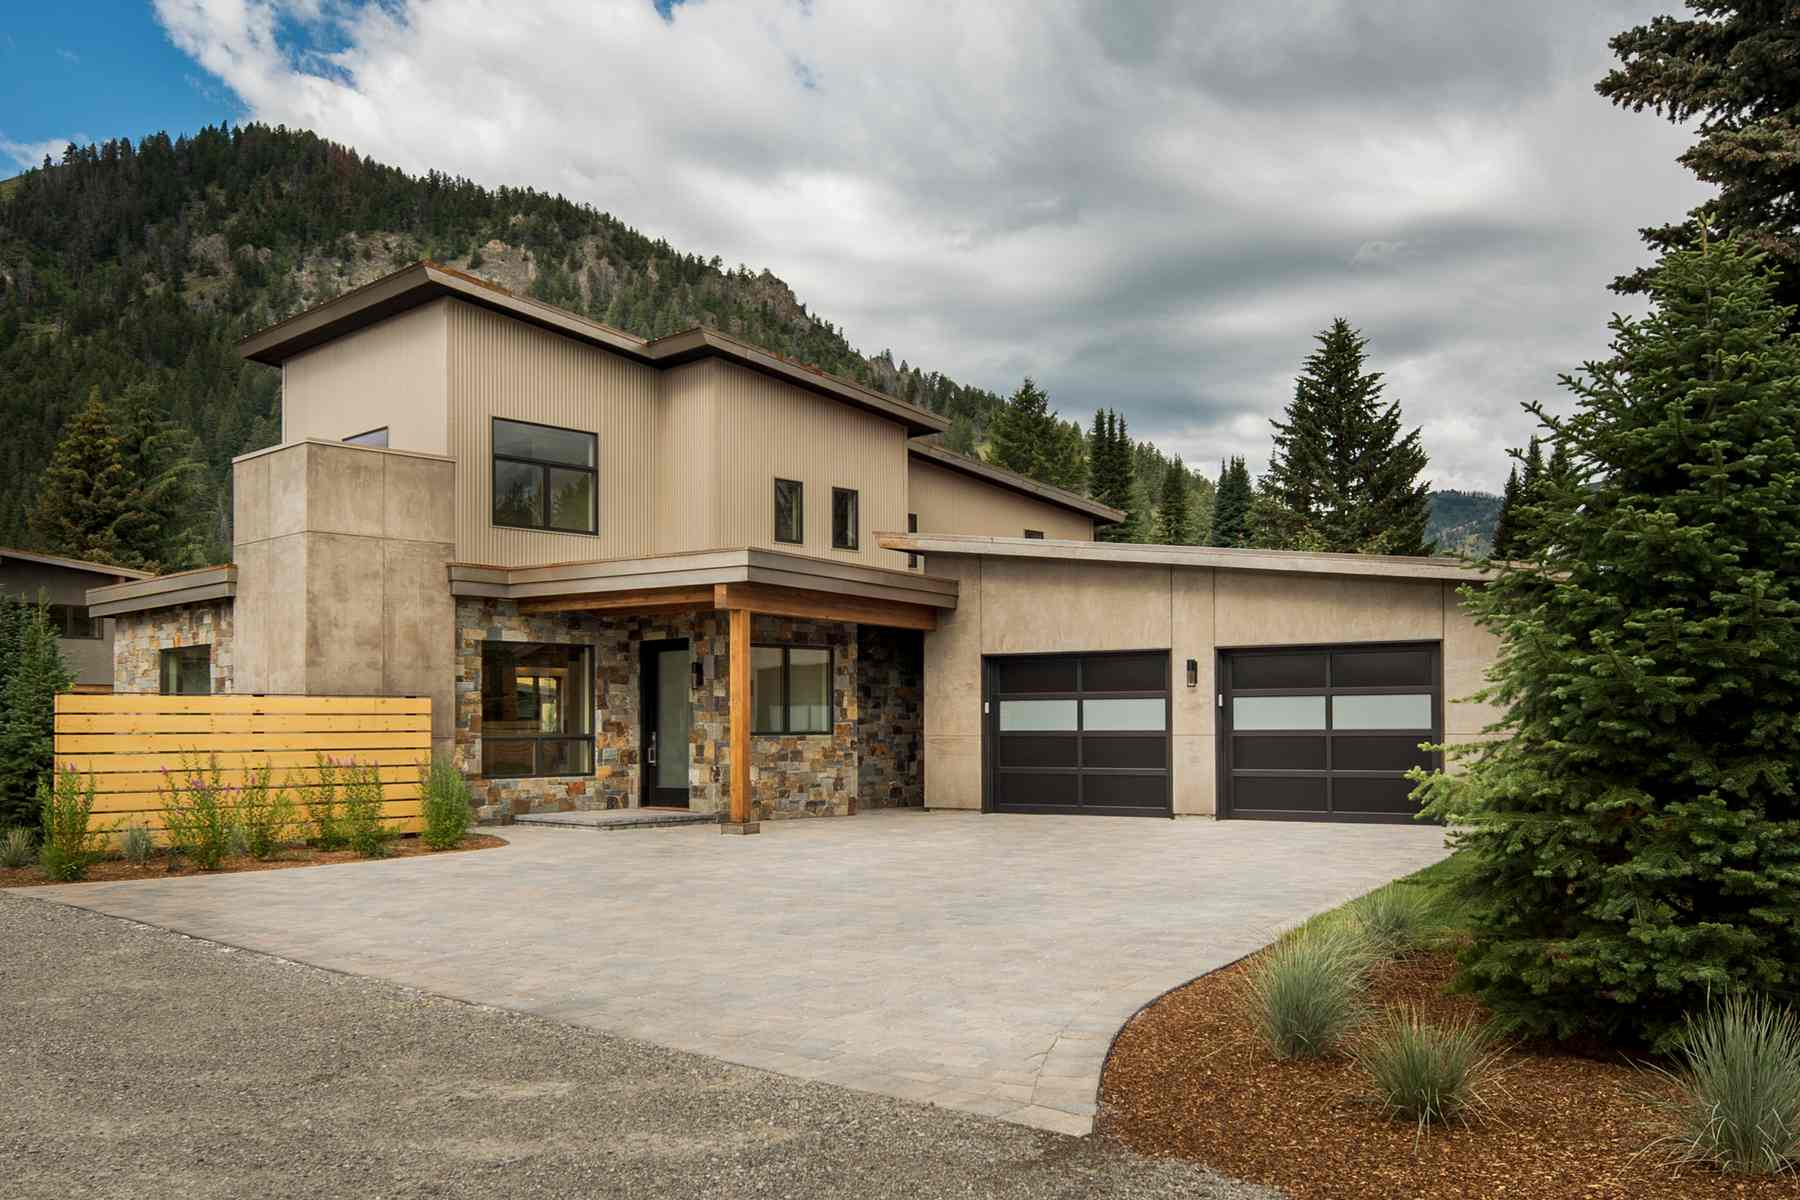 Single Family Home for Sale at Architecturally Stunning 1301 Warm Springs Rd Ketchum, Idaho 83340 United States